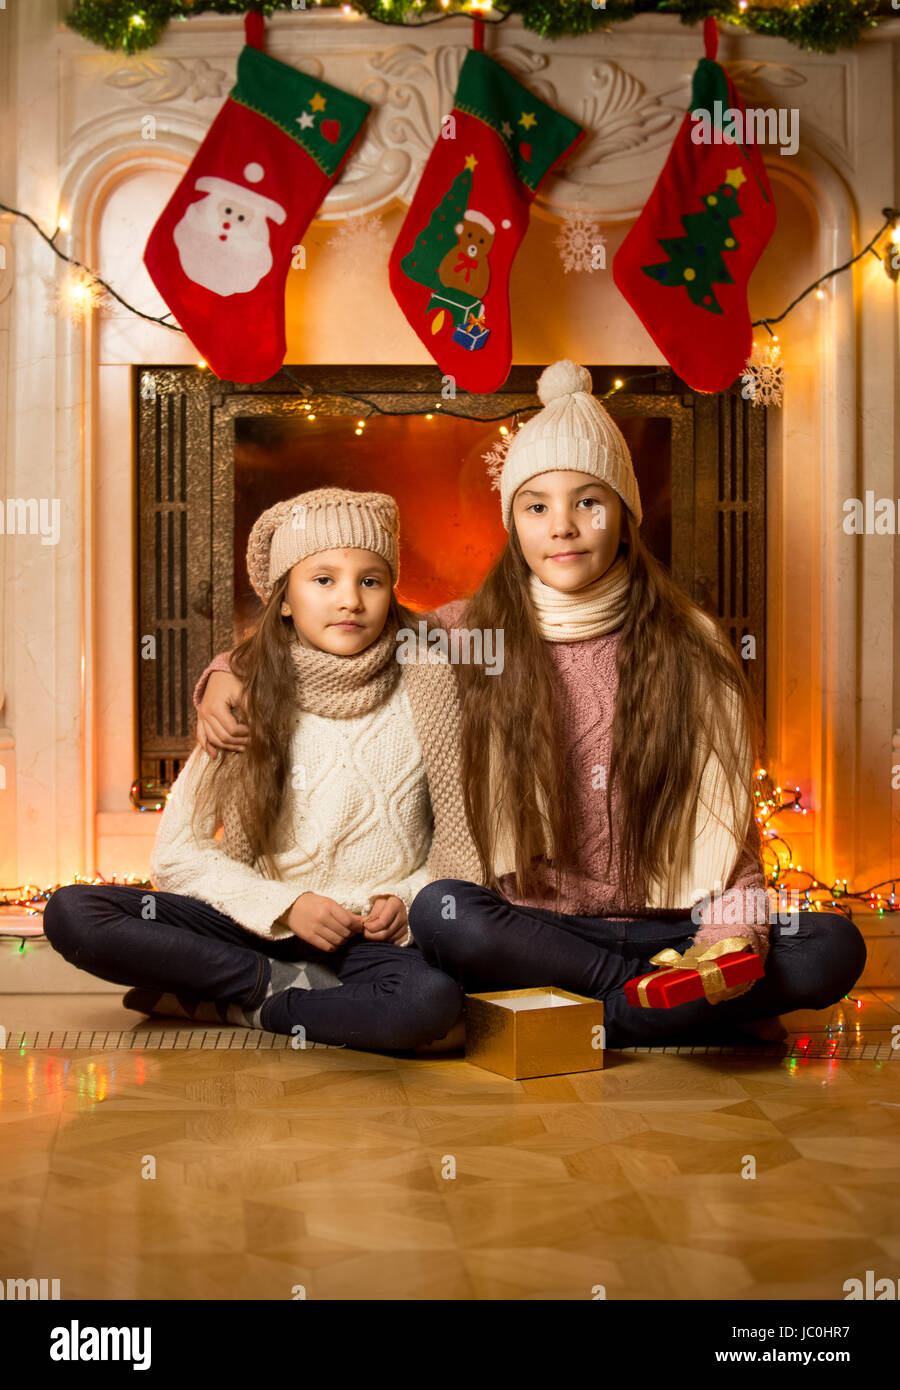 portrait of two cute girls sitting next to decorated fireplace for